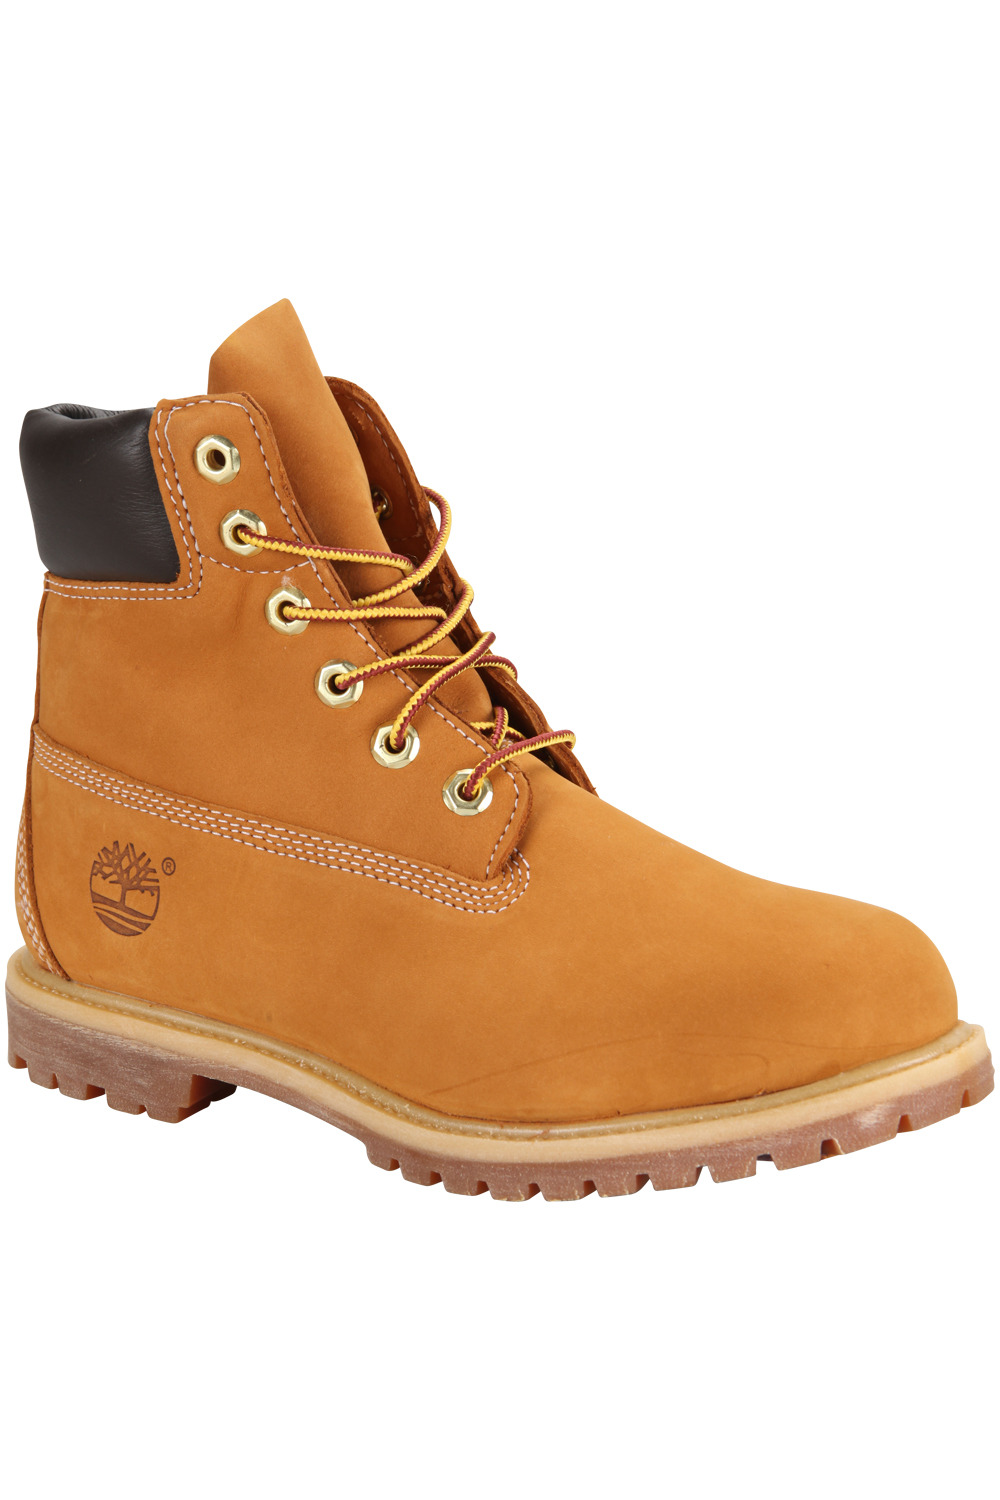 Shoes , Gorgeous Timberland Womanproduct Image :  Timberland Boat Shoes Product Image